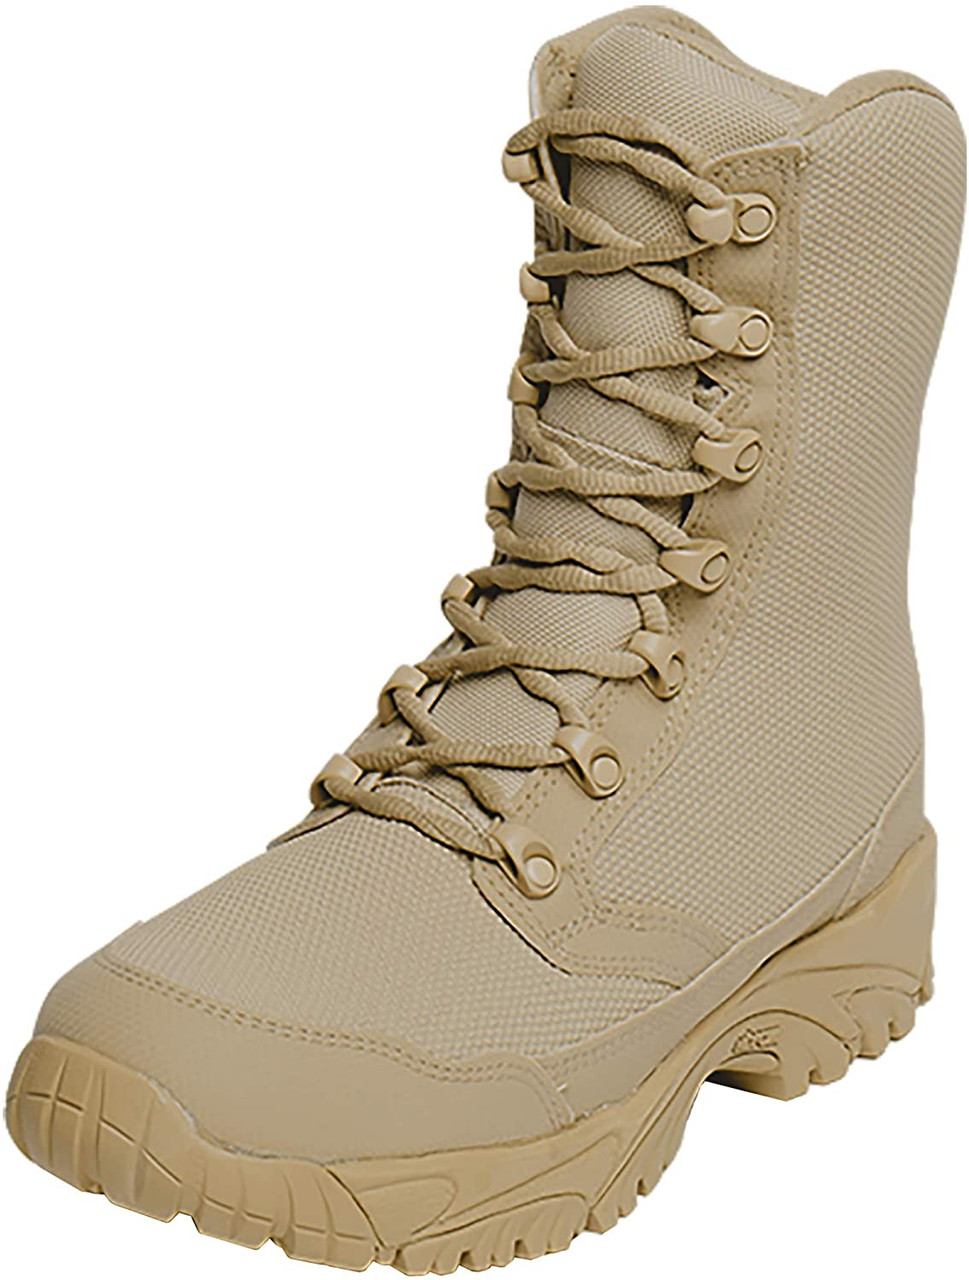 "ALTAI 8"" Tan Waterproof Combat Boot"